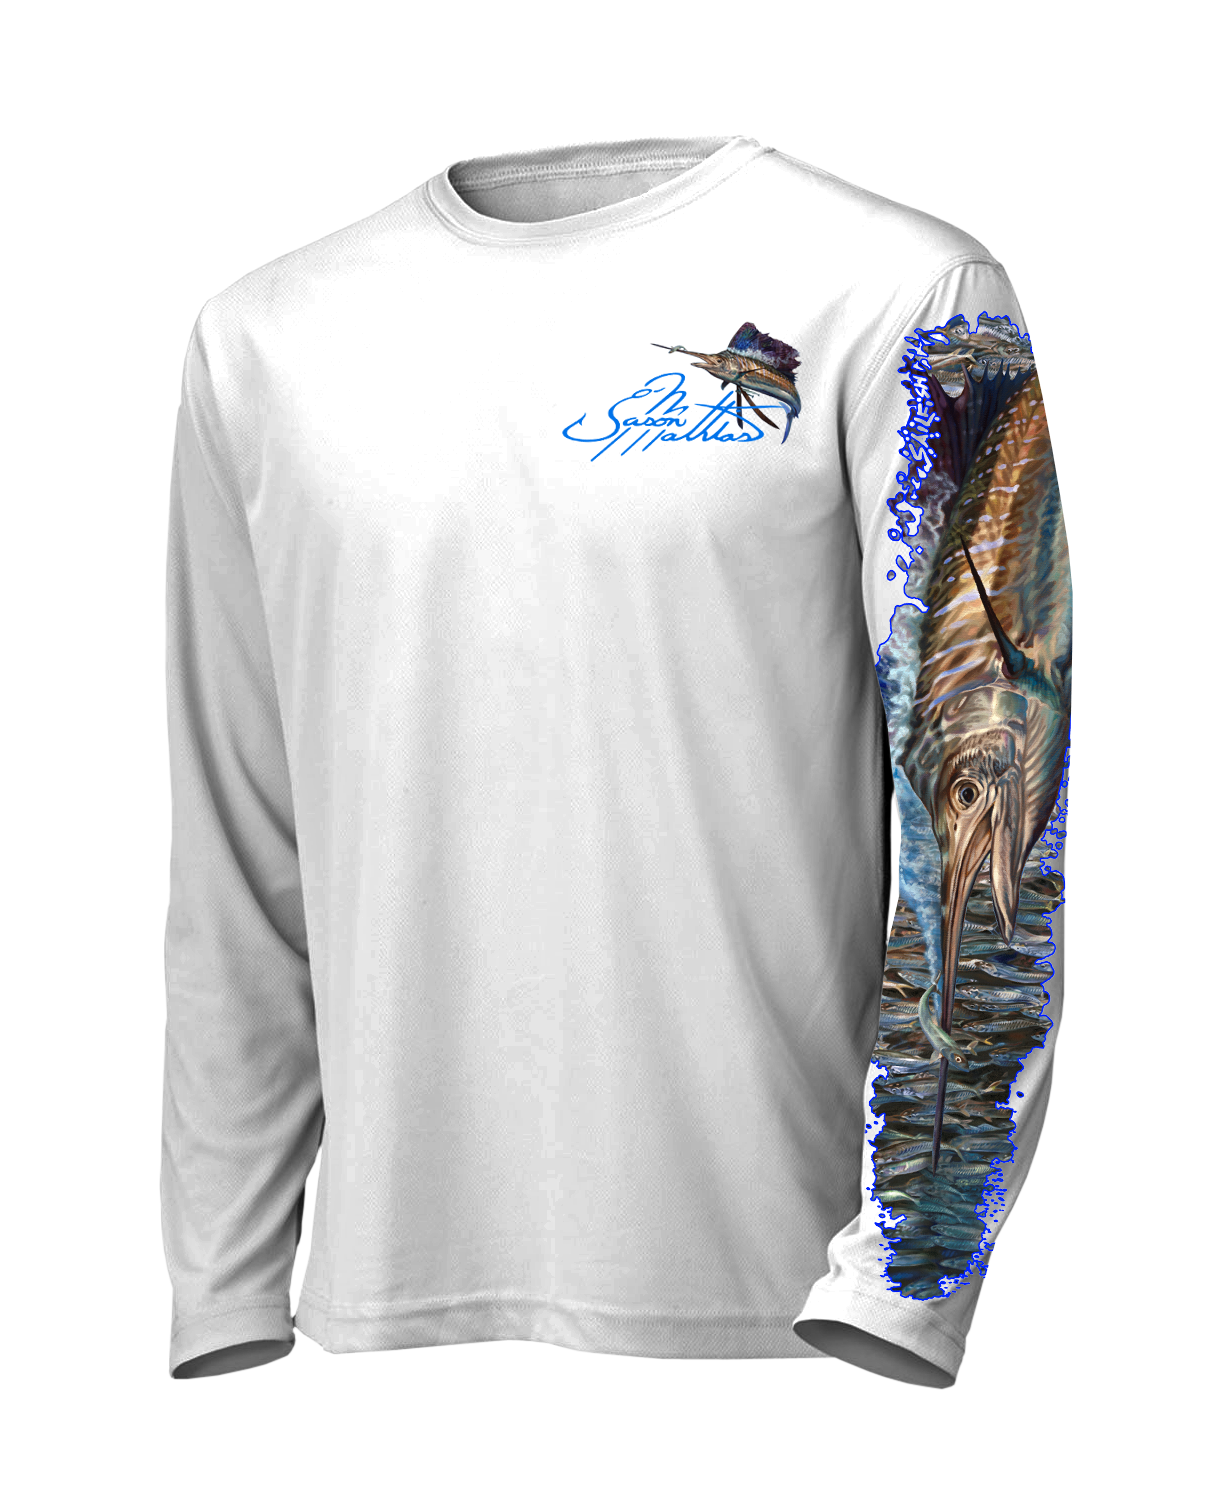 jason-mathias-sailfish-shirt-front-white.png